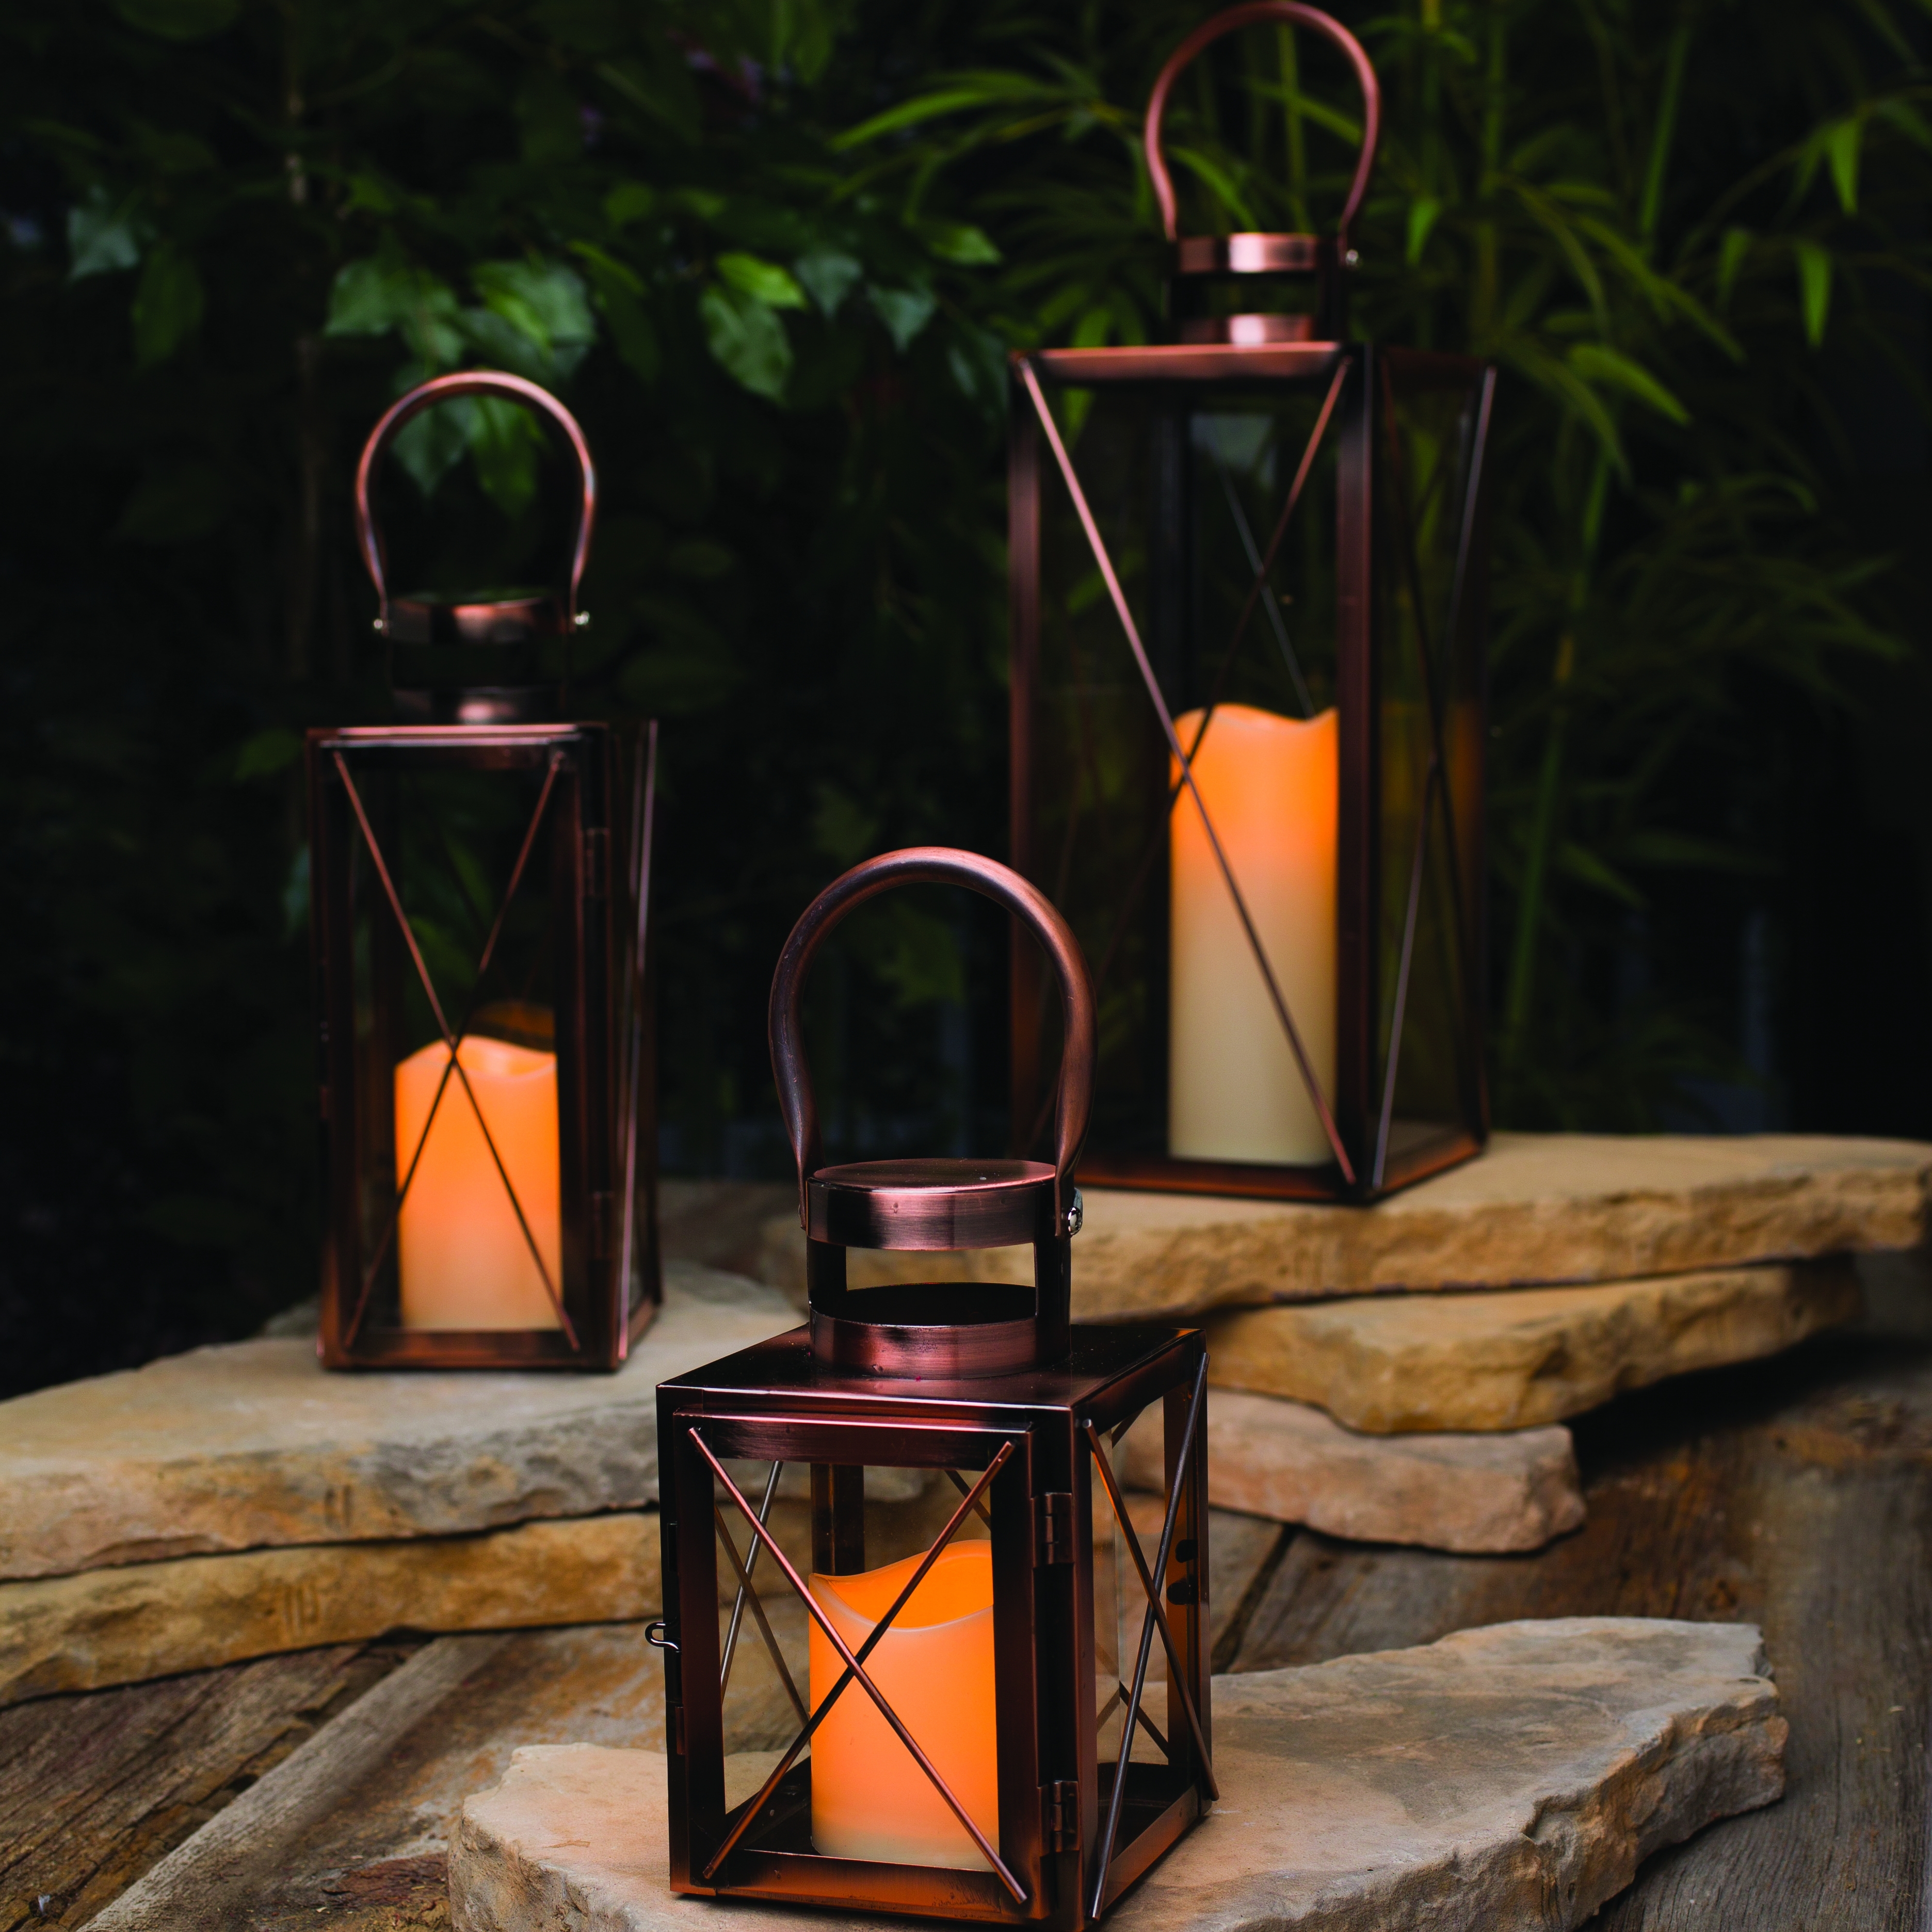 Most Popular Outdoor Lanterns And Candles Within Lighting: Brighten Up Your Space With Stunning Candle Lanterns (View 19 of 20)